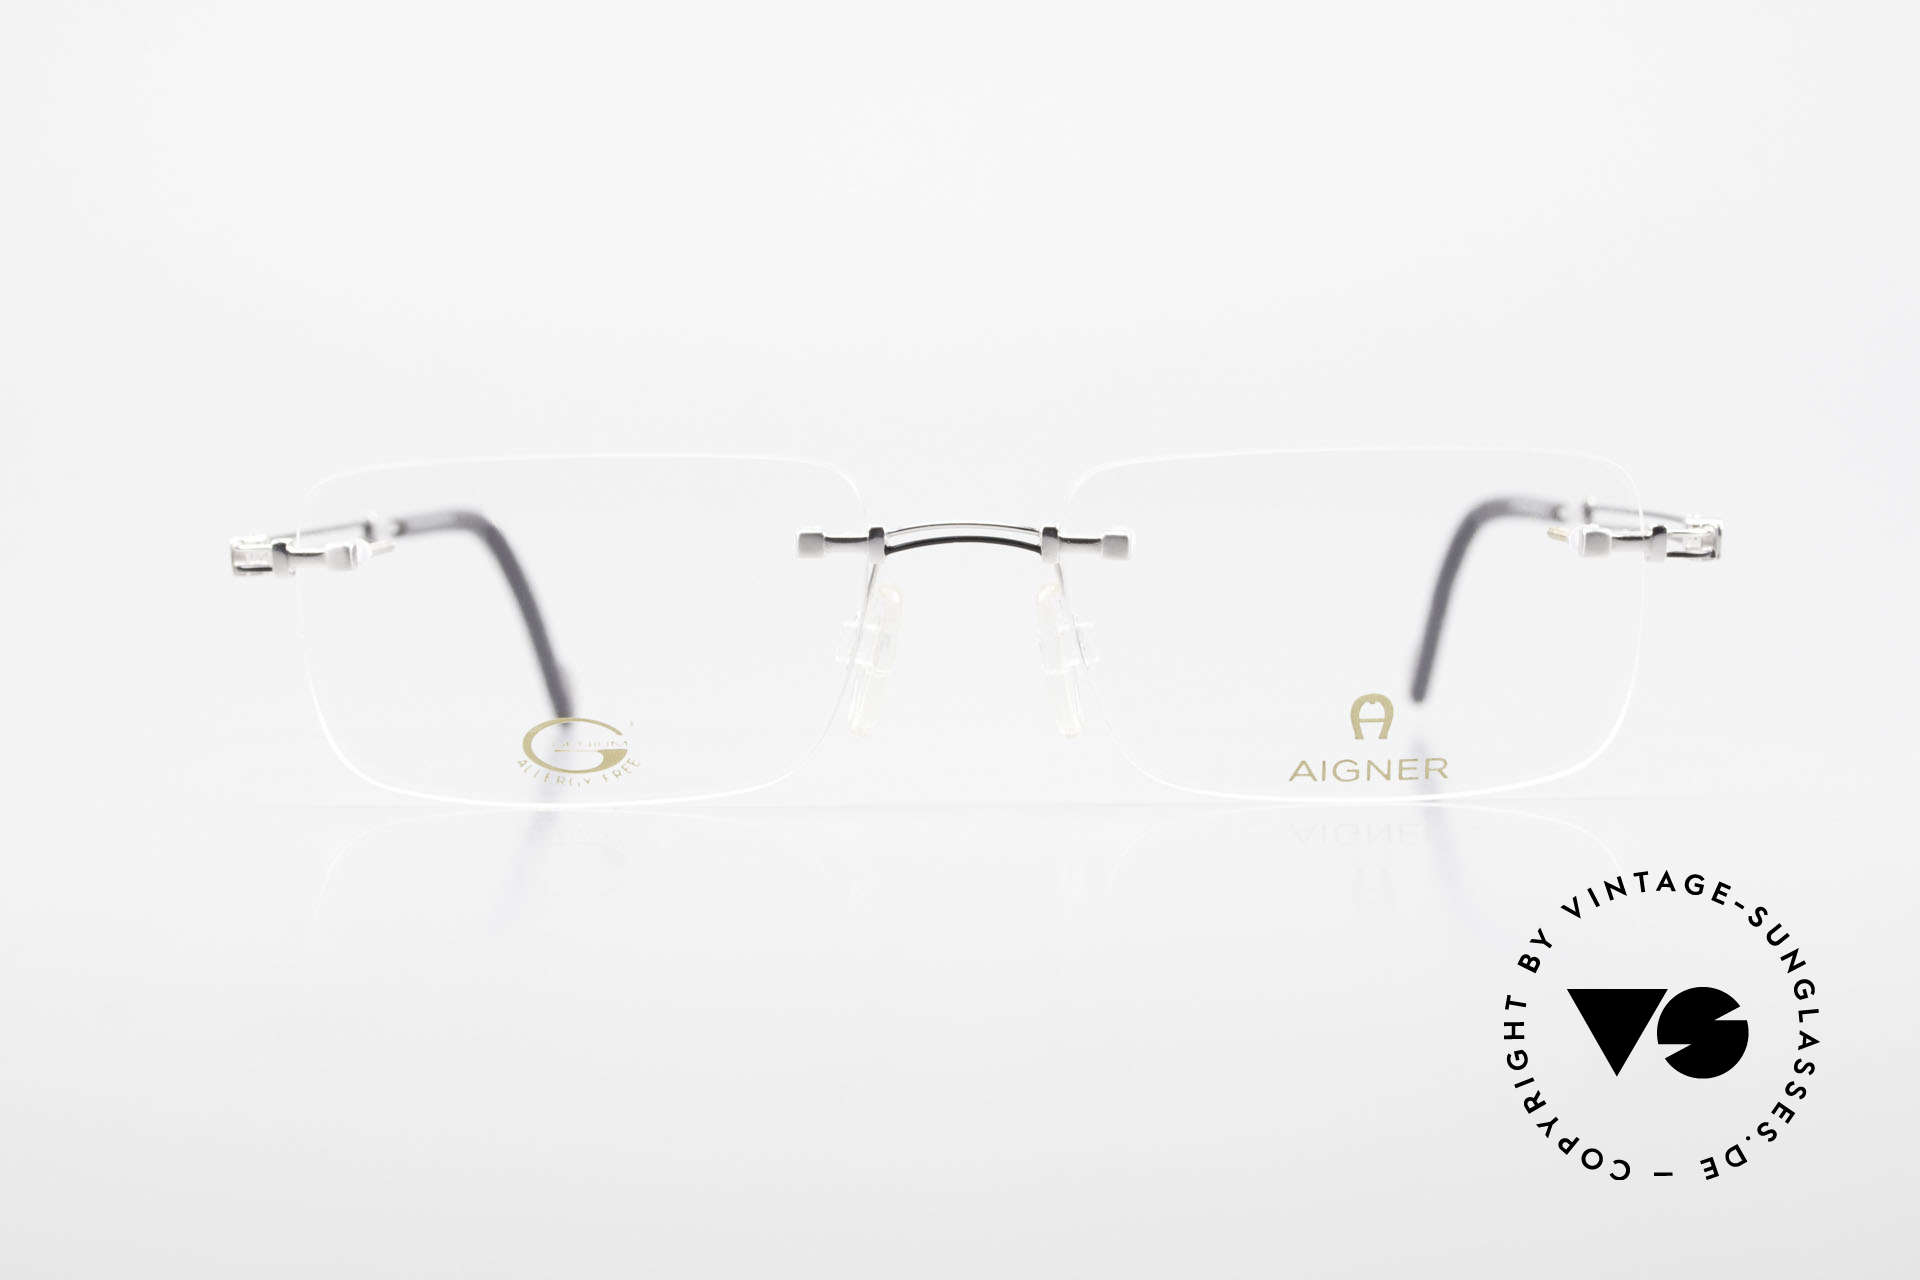 Aigner EA496 Rimless 90's Vintage Glasses, 90's original Aigner eyewear in cooperation with Metzler, Made for Men